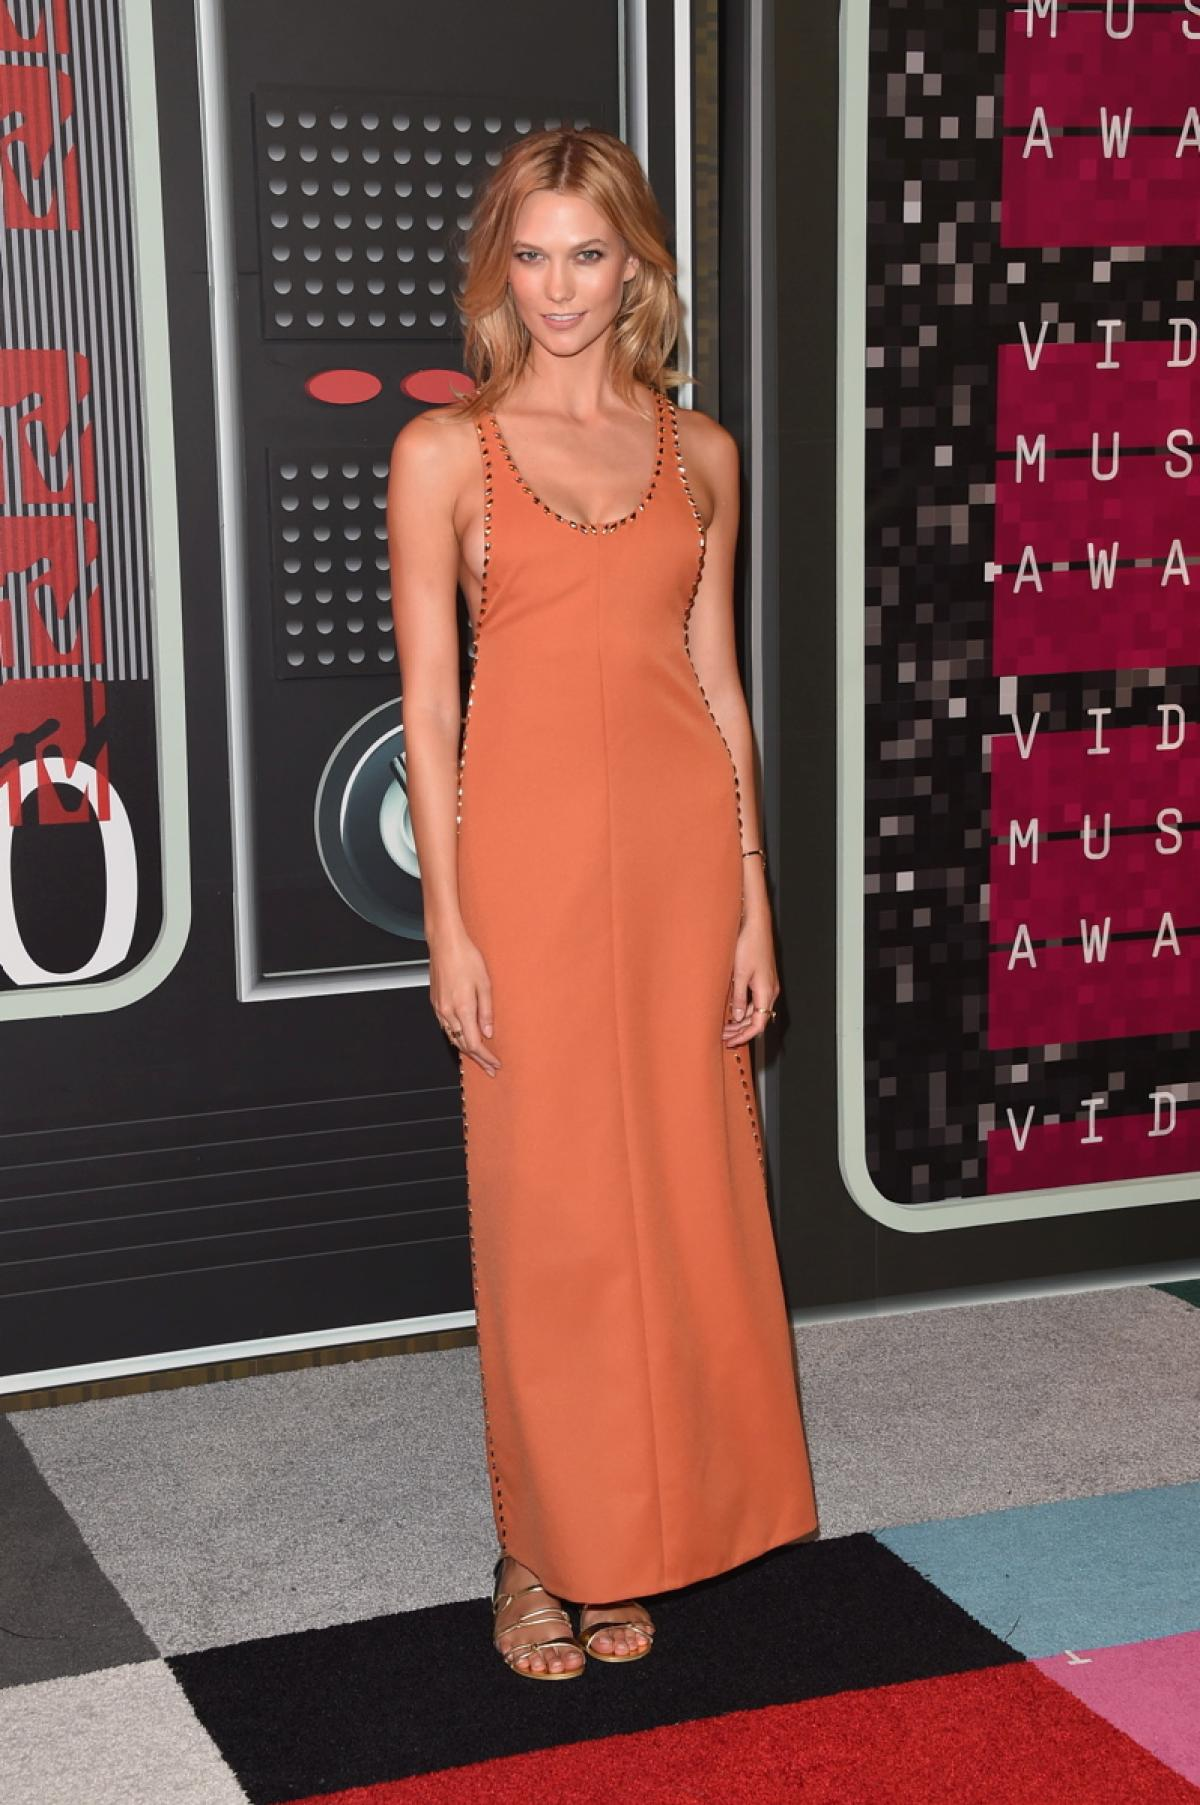 karlie-kloss-in-louis-vuitton-at-2015-mtv-video-music-awards